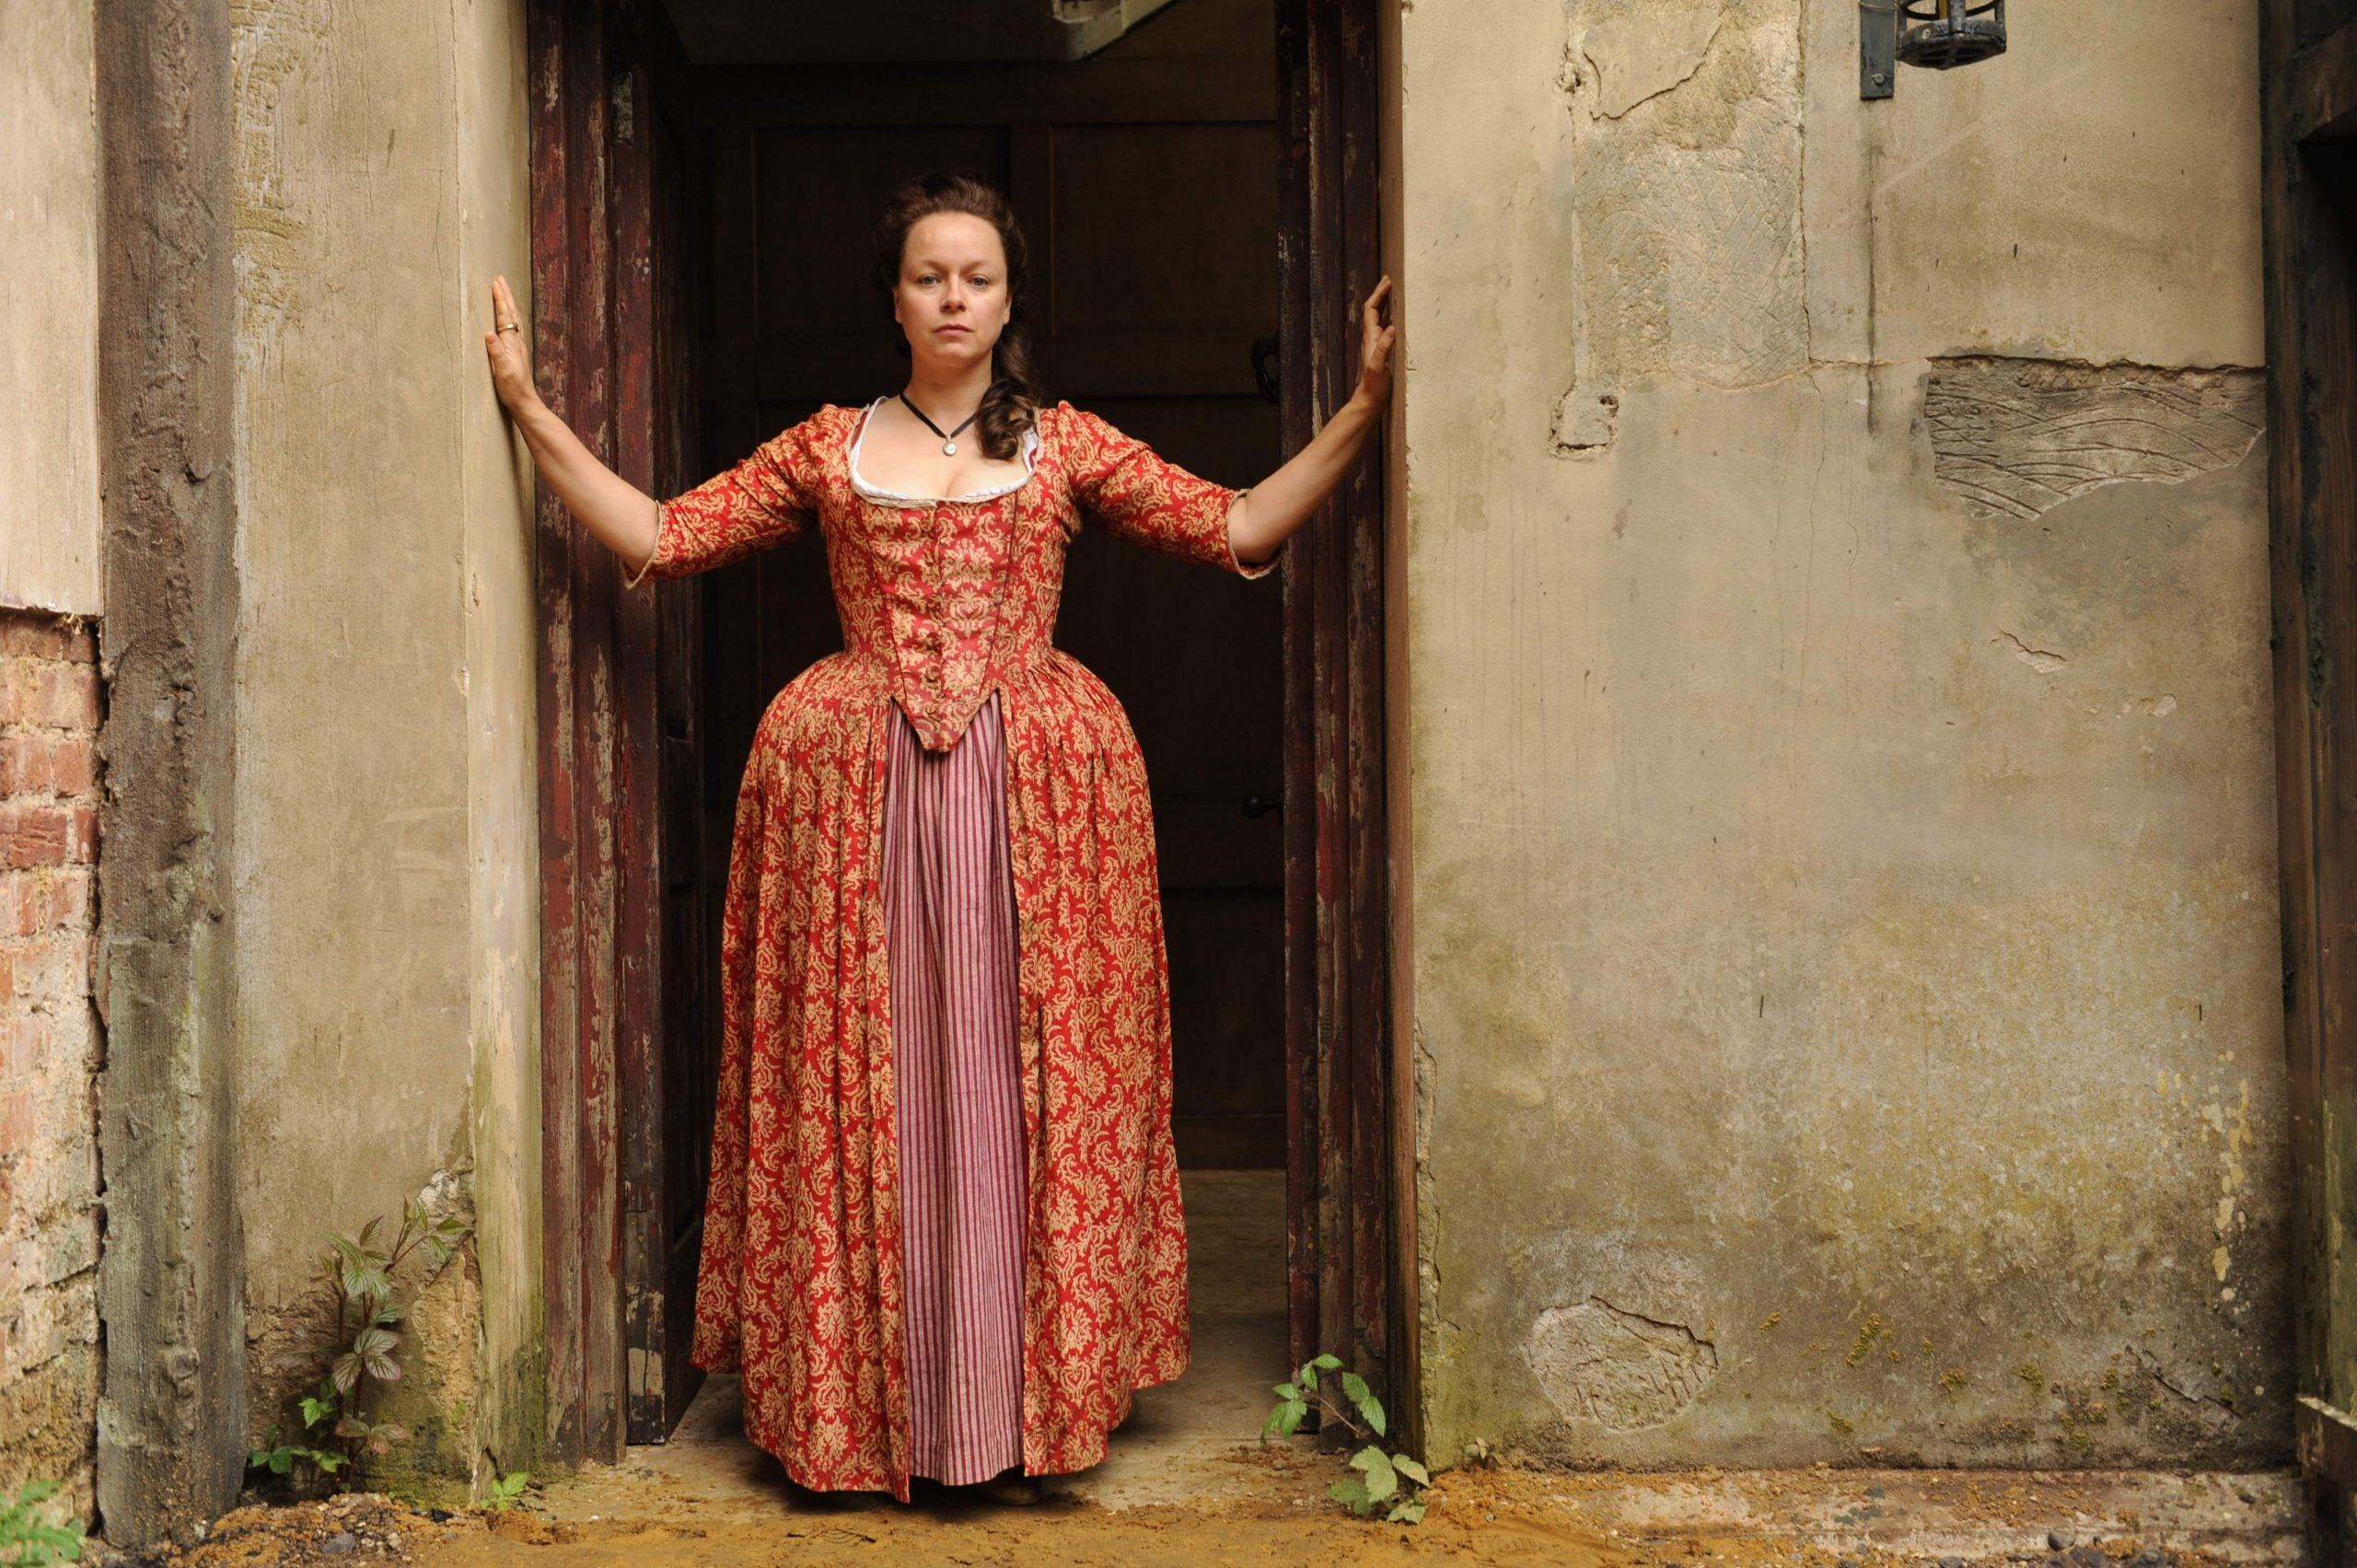 A little light Georgian porn: ITV's Harlots very much does what it says on the tin